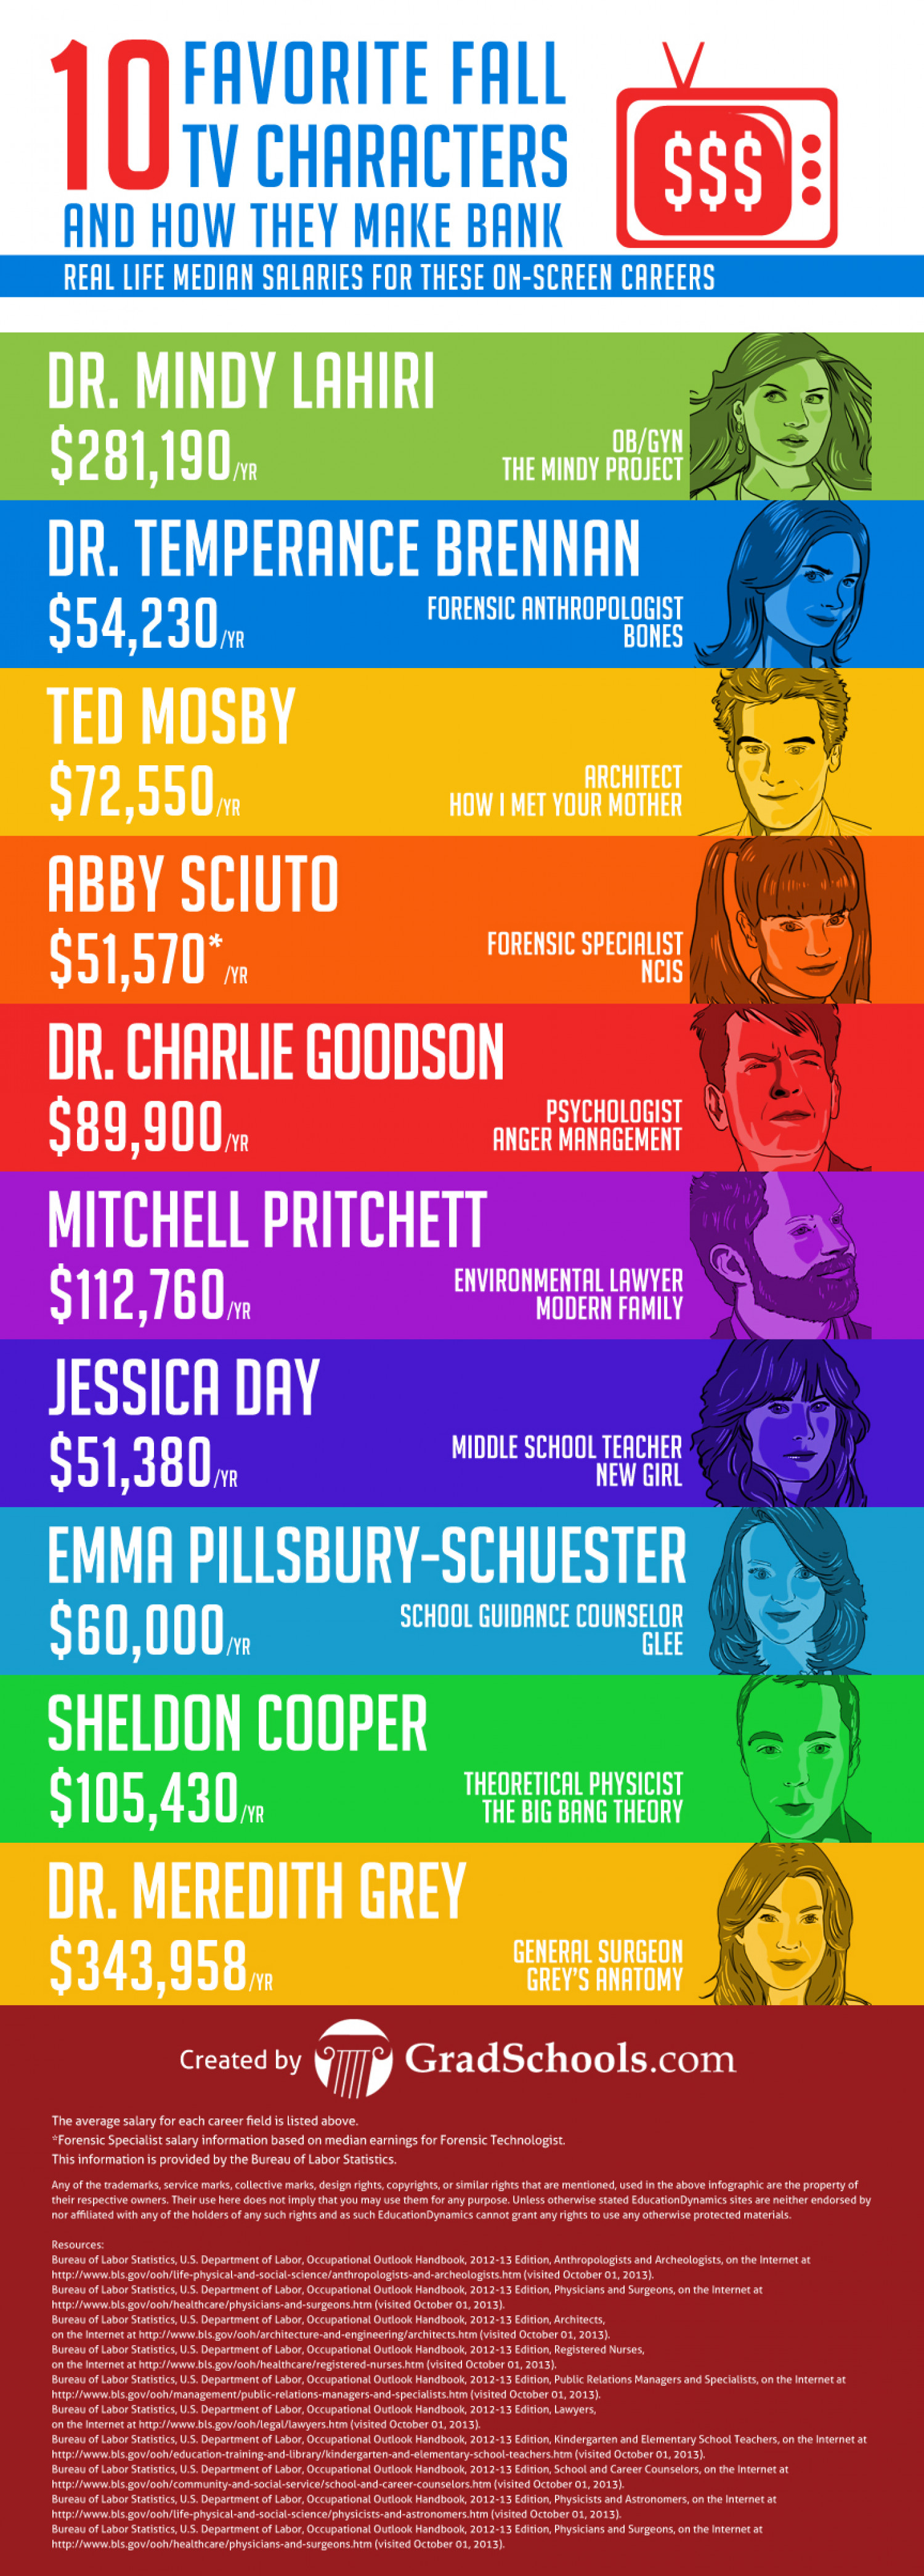 10 Favorite Fall TV Characters and How They Make Bank  Infographic